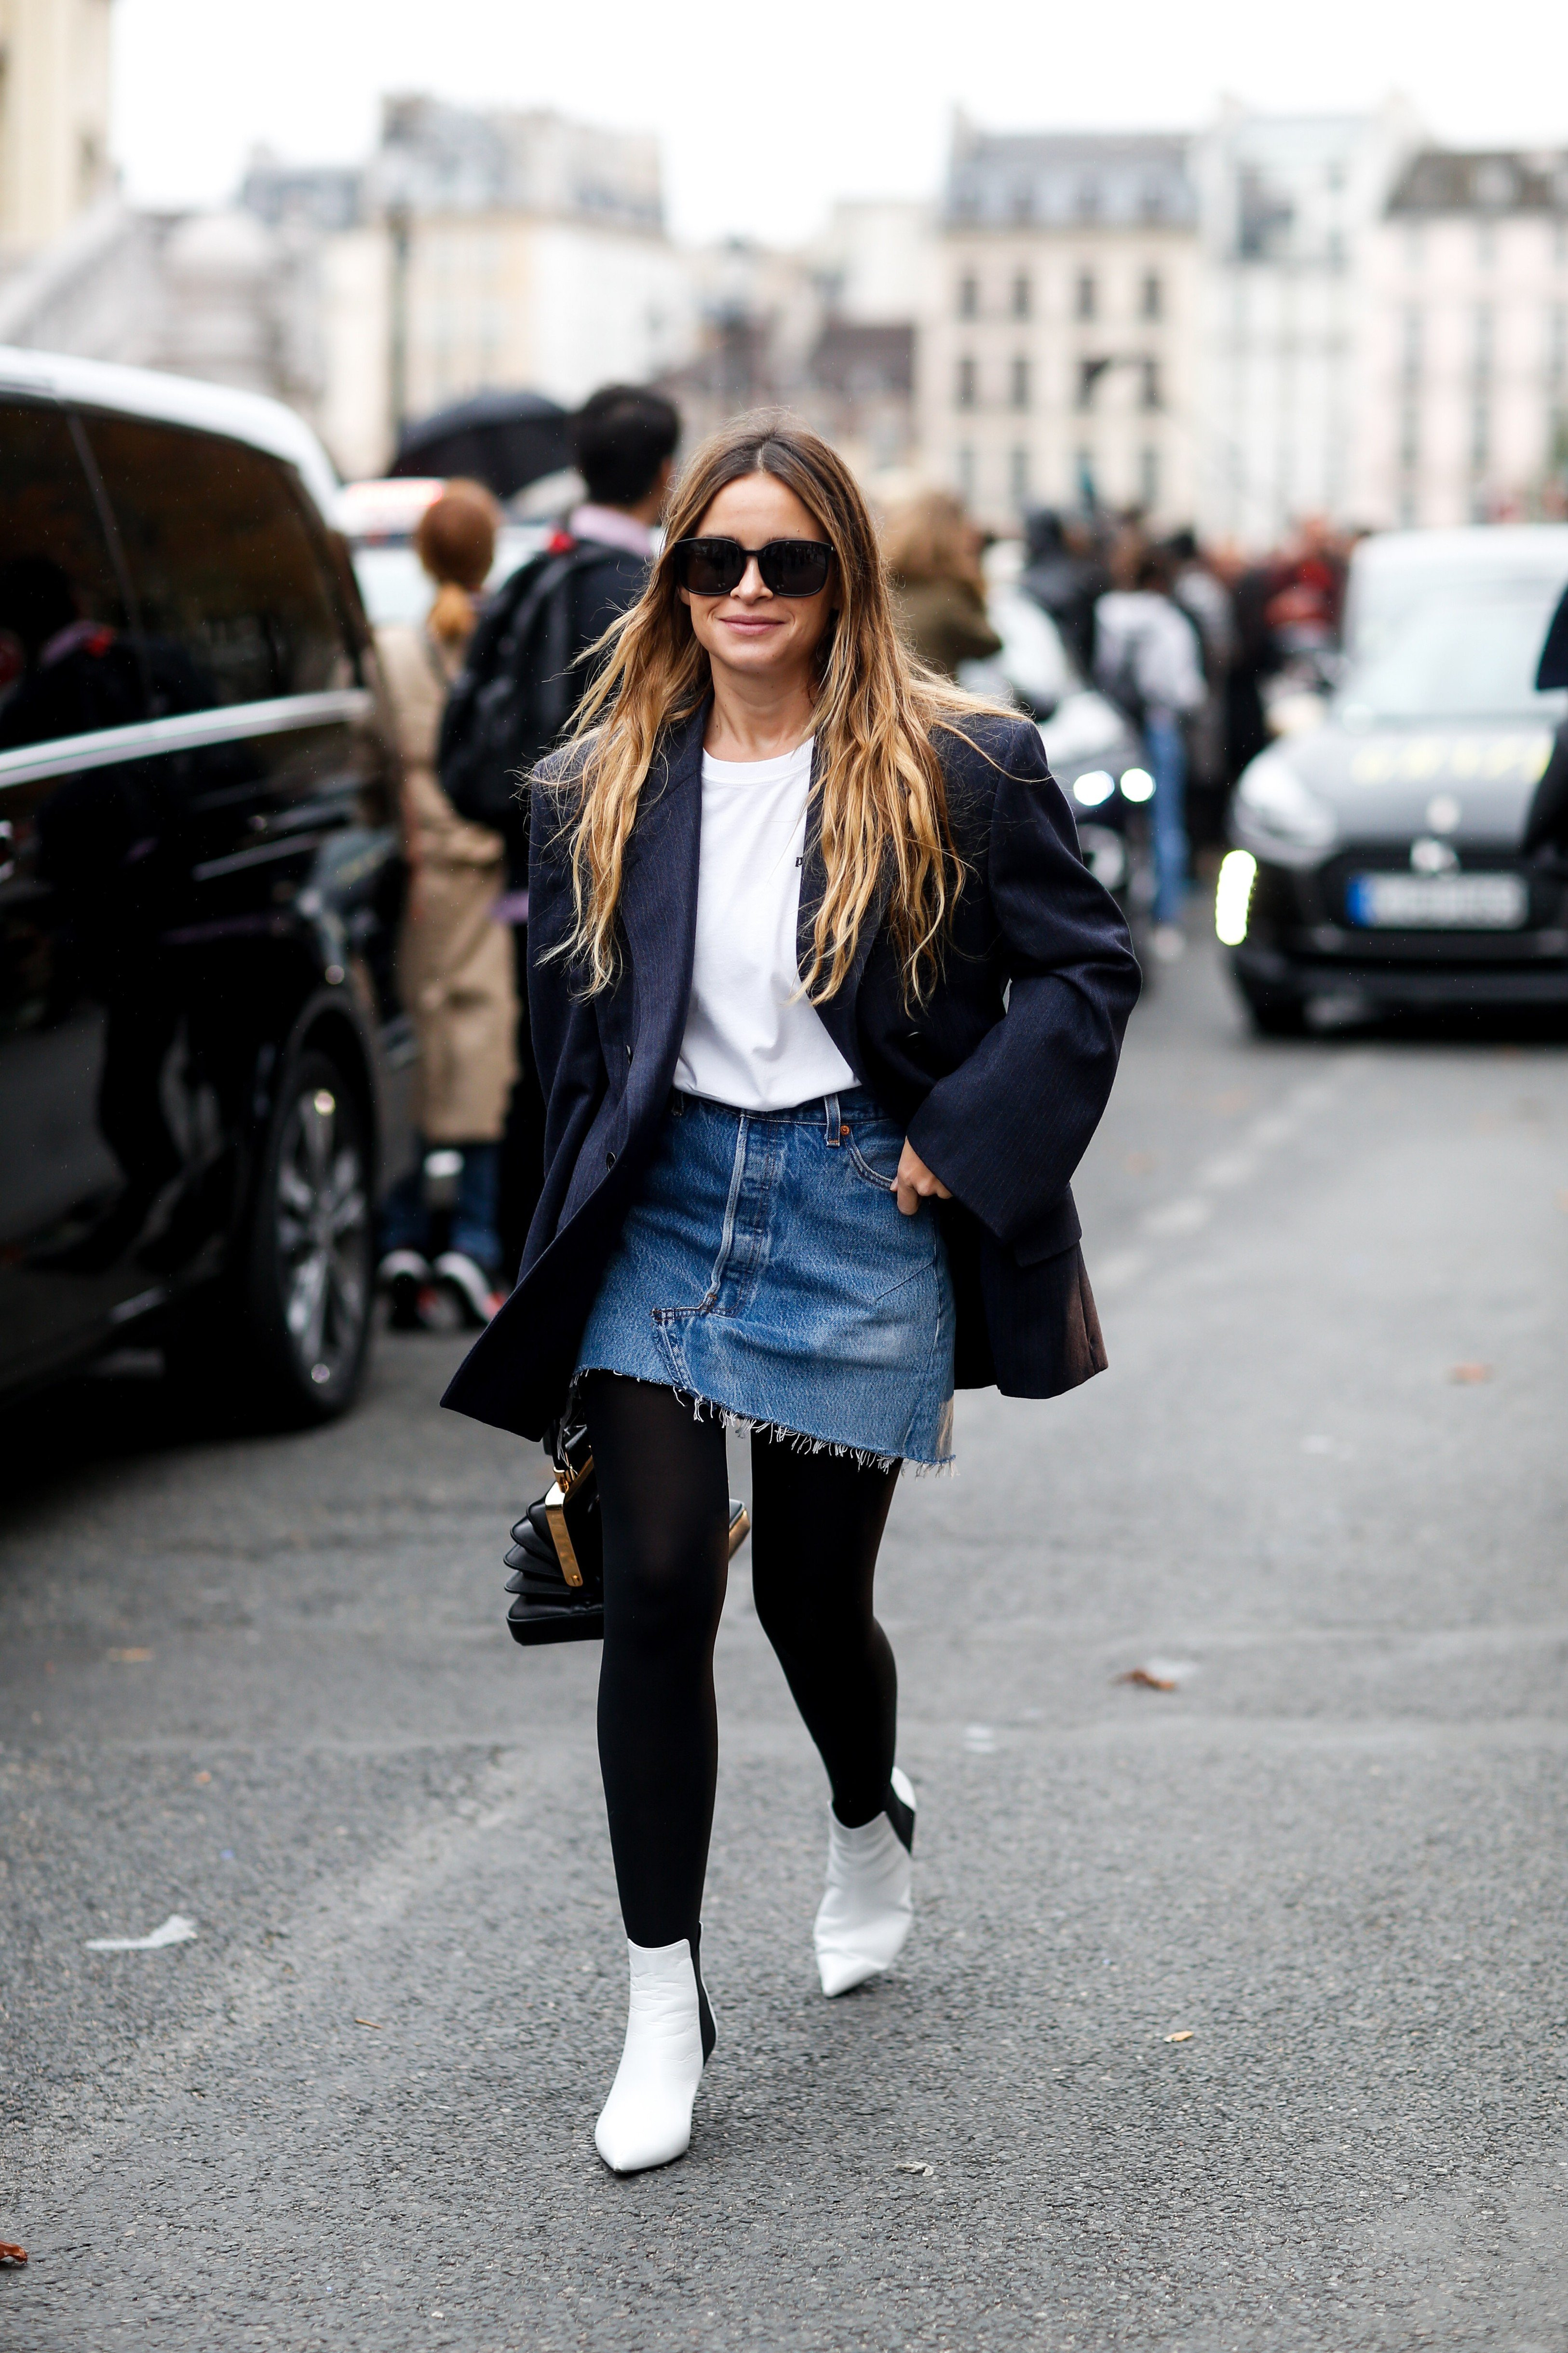 Street style, Miroslava Duma (Mira Duma) arriving at Givenchy Spring-Summer 2018 show held at Palais de Justice, in Paris, France, on October 1st, 2017., Image: 352028053, License: Rights-managed, Restrictions: , Model Release: no, Credit line: Profimedia, Abaca